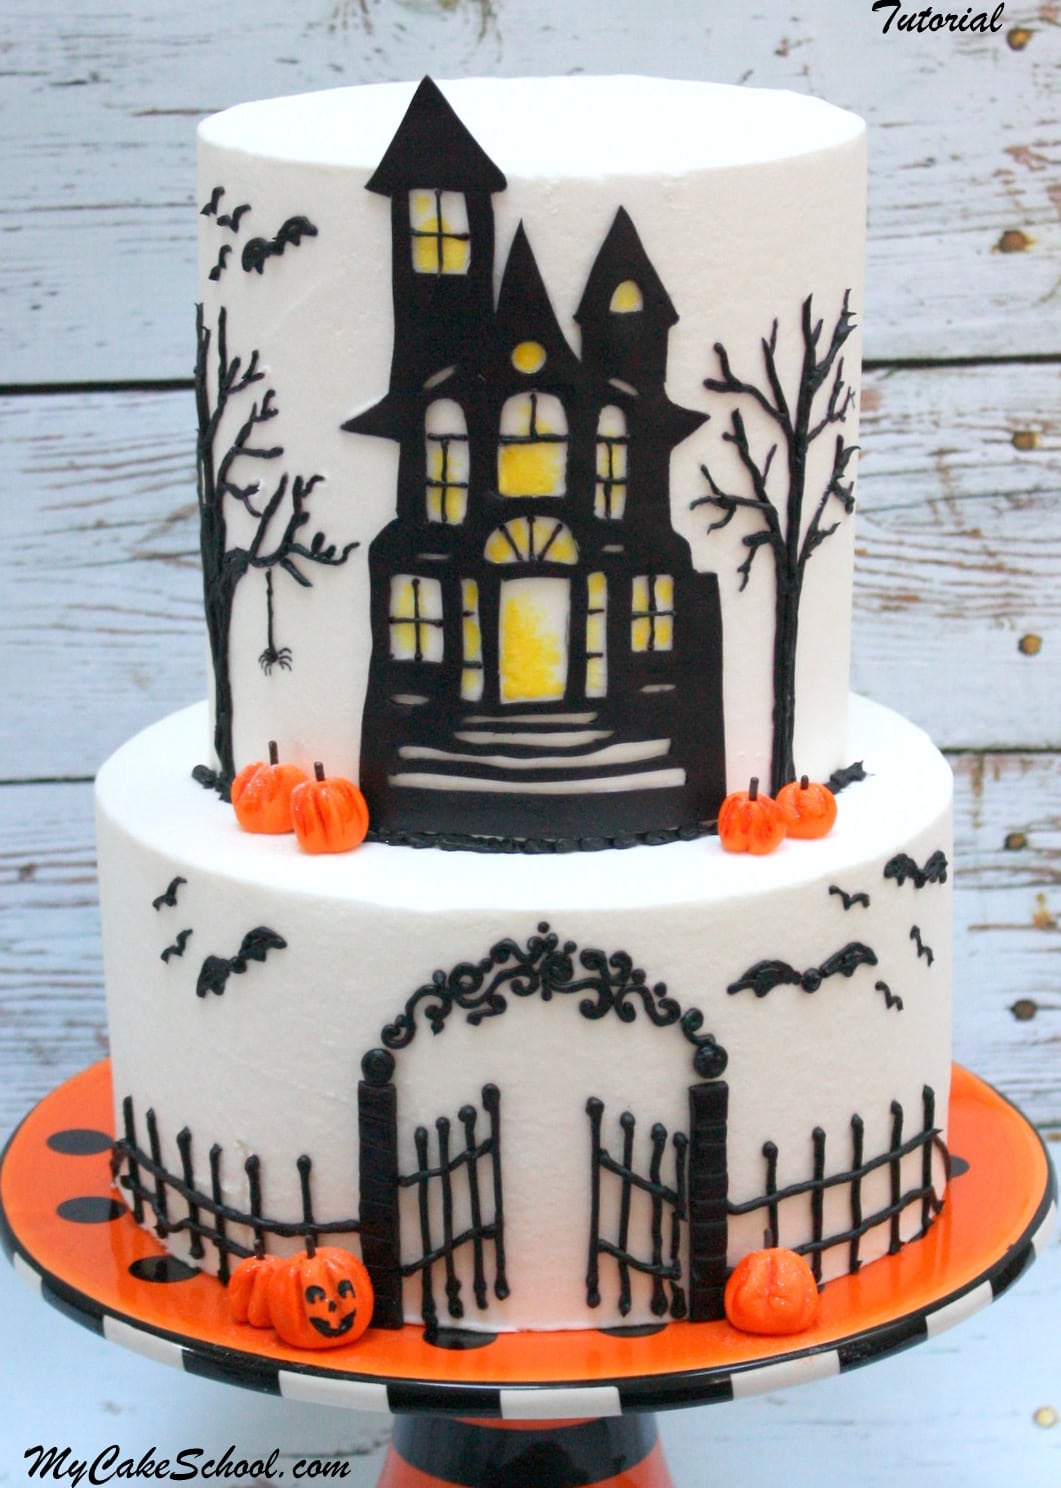 Halloween Cake Decorating Templates : How to Make a Haunted House Cake! Cake Decorating Video ...